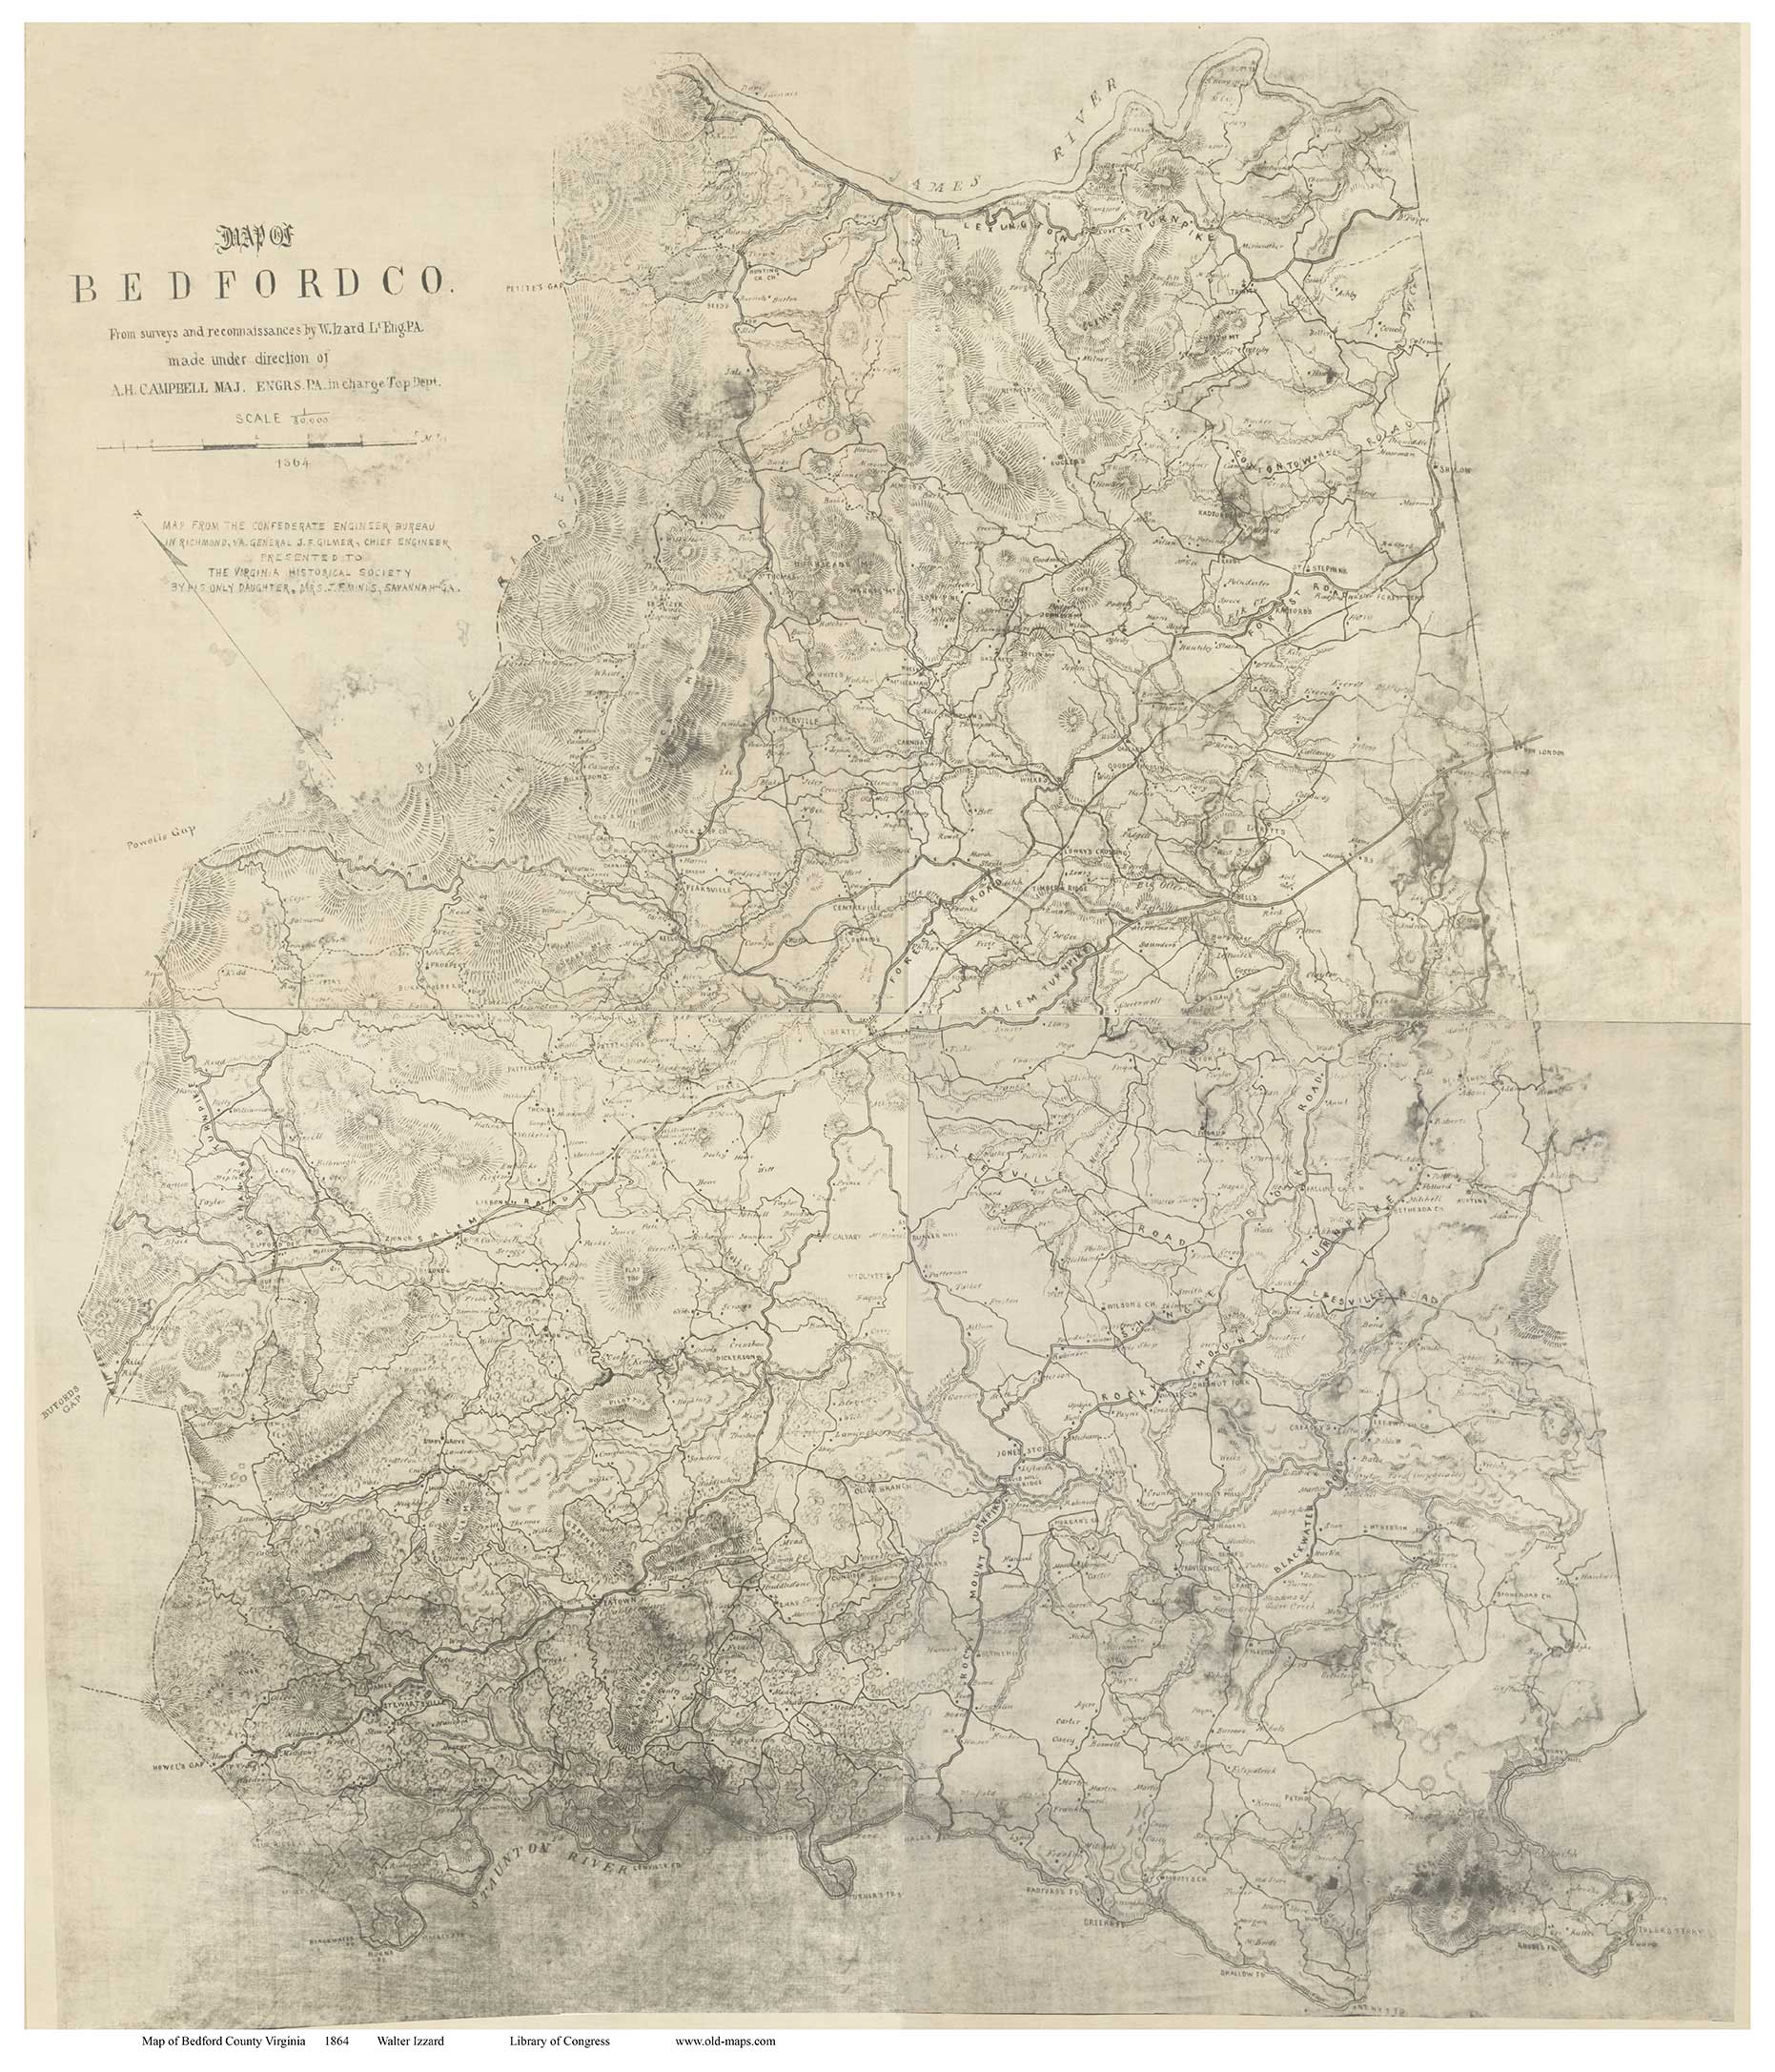 Bedford County Virginia 1864 Old Map Reprint OLD MAPS